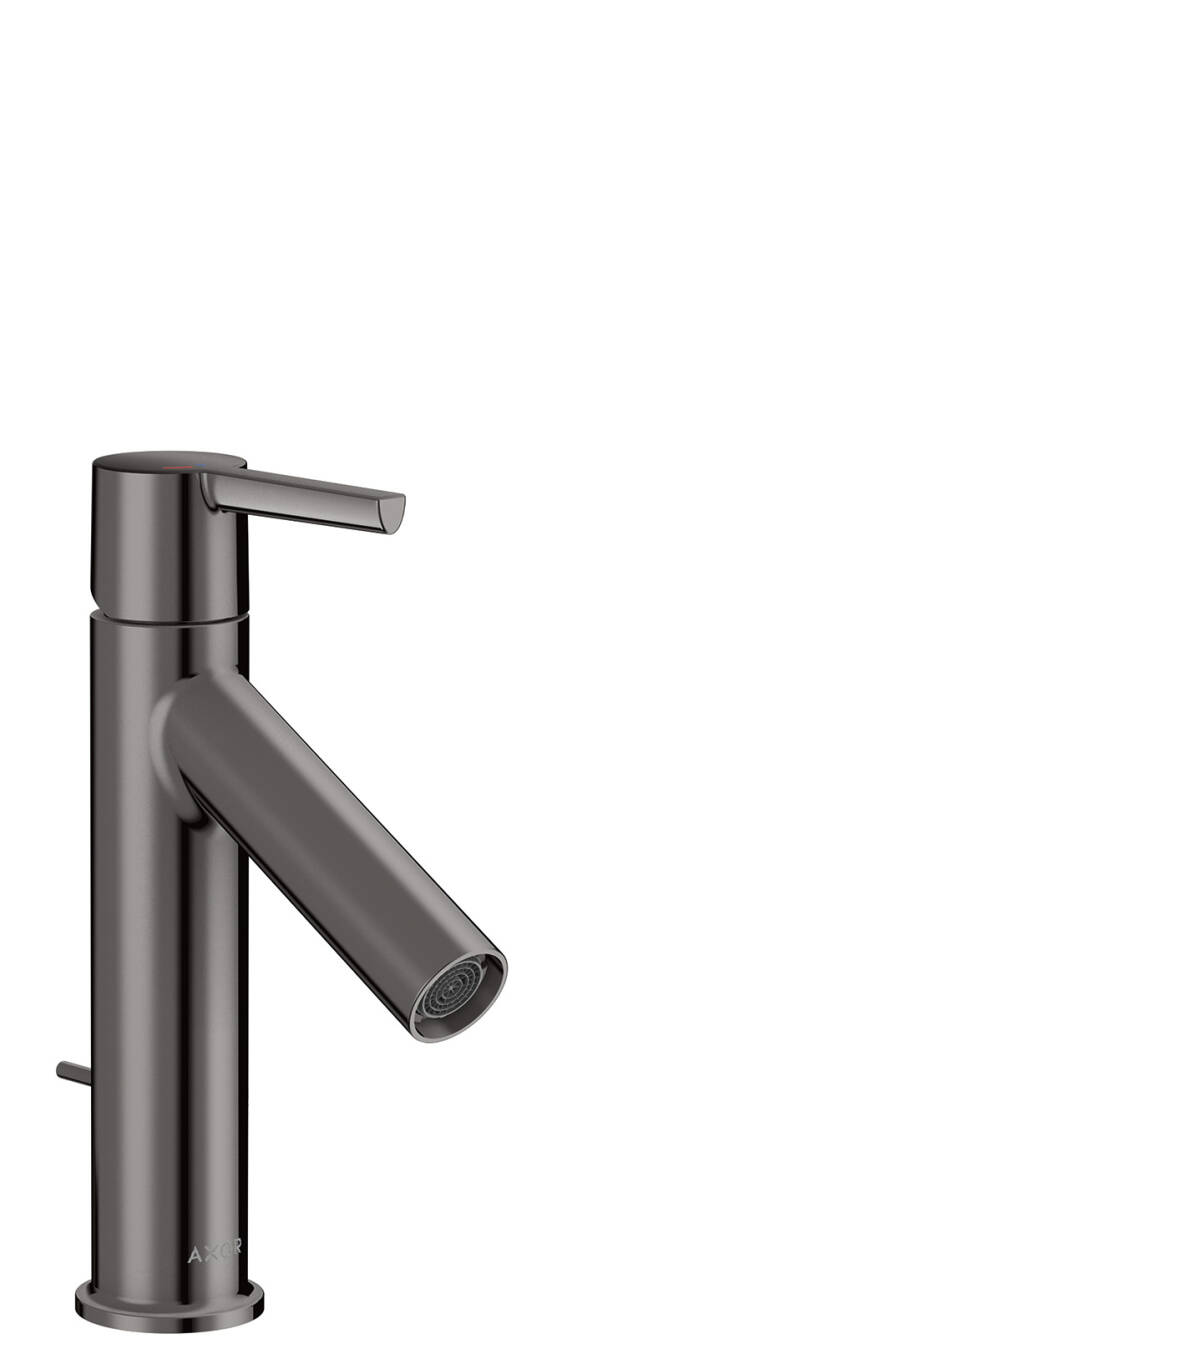 Single lever basin mixer 100 CoolStart with lever handle and pop-up waste set, Polished Black Chrome, 10007330